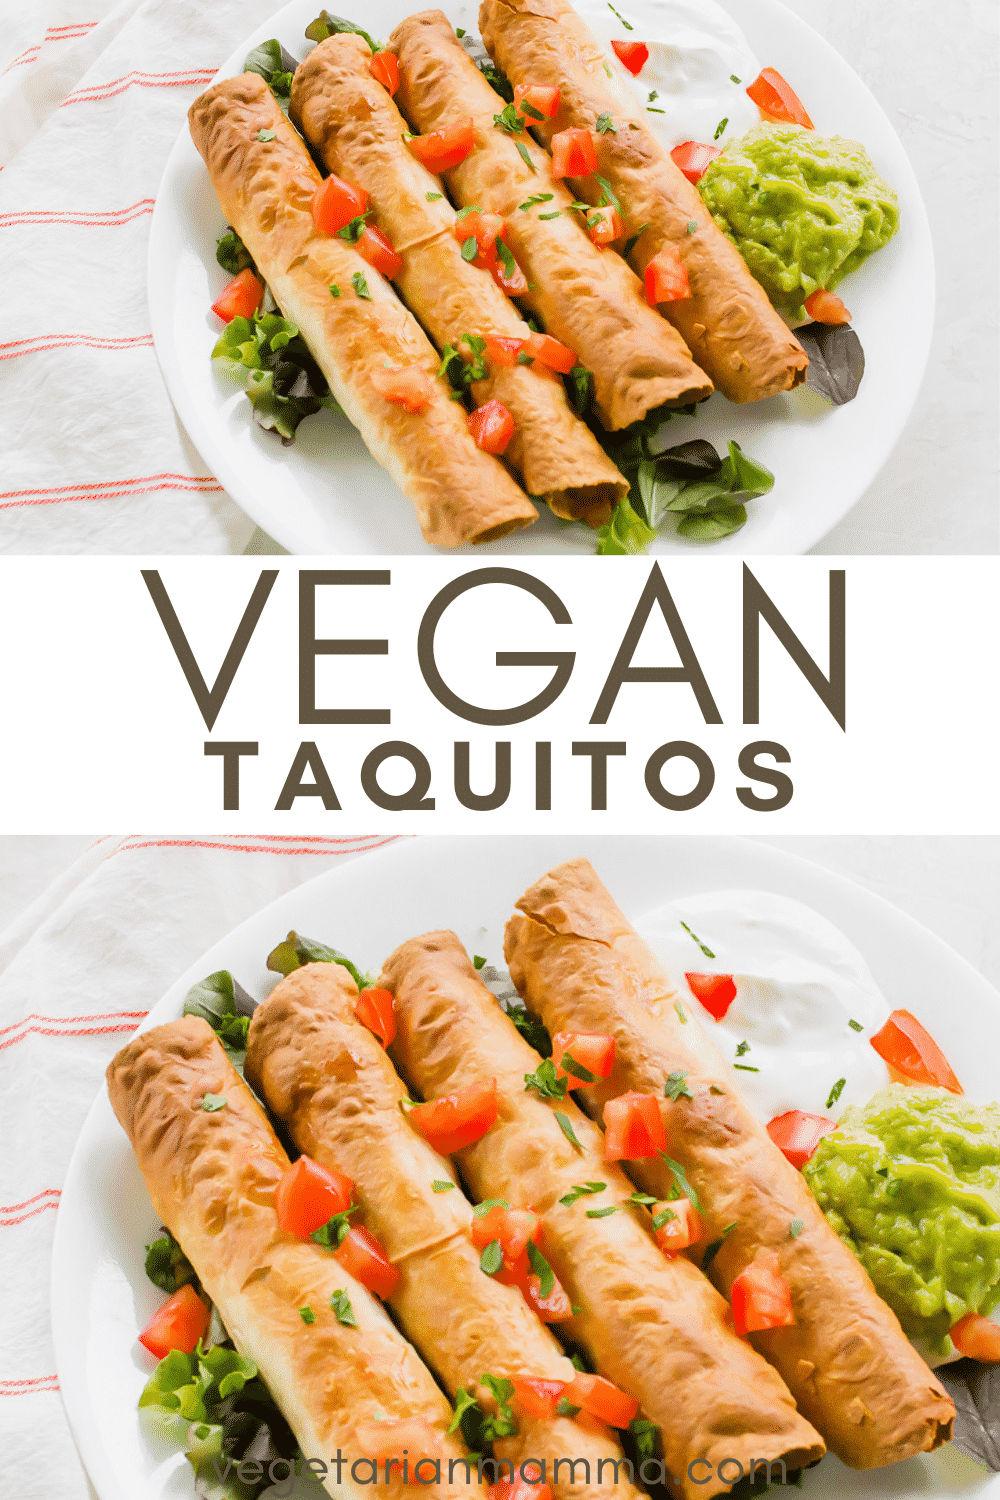 Vegan Taquitos are the crispiest rolled taco! Stuff these baked tortillas with your favorite taco toppings and Beyond Meat. #mexicannight #tacotuesday